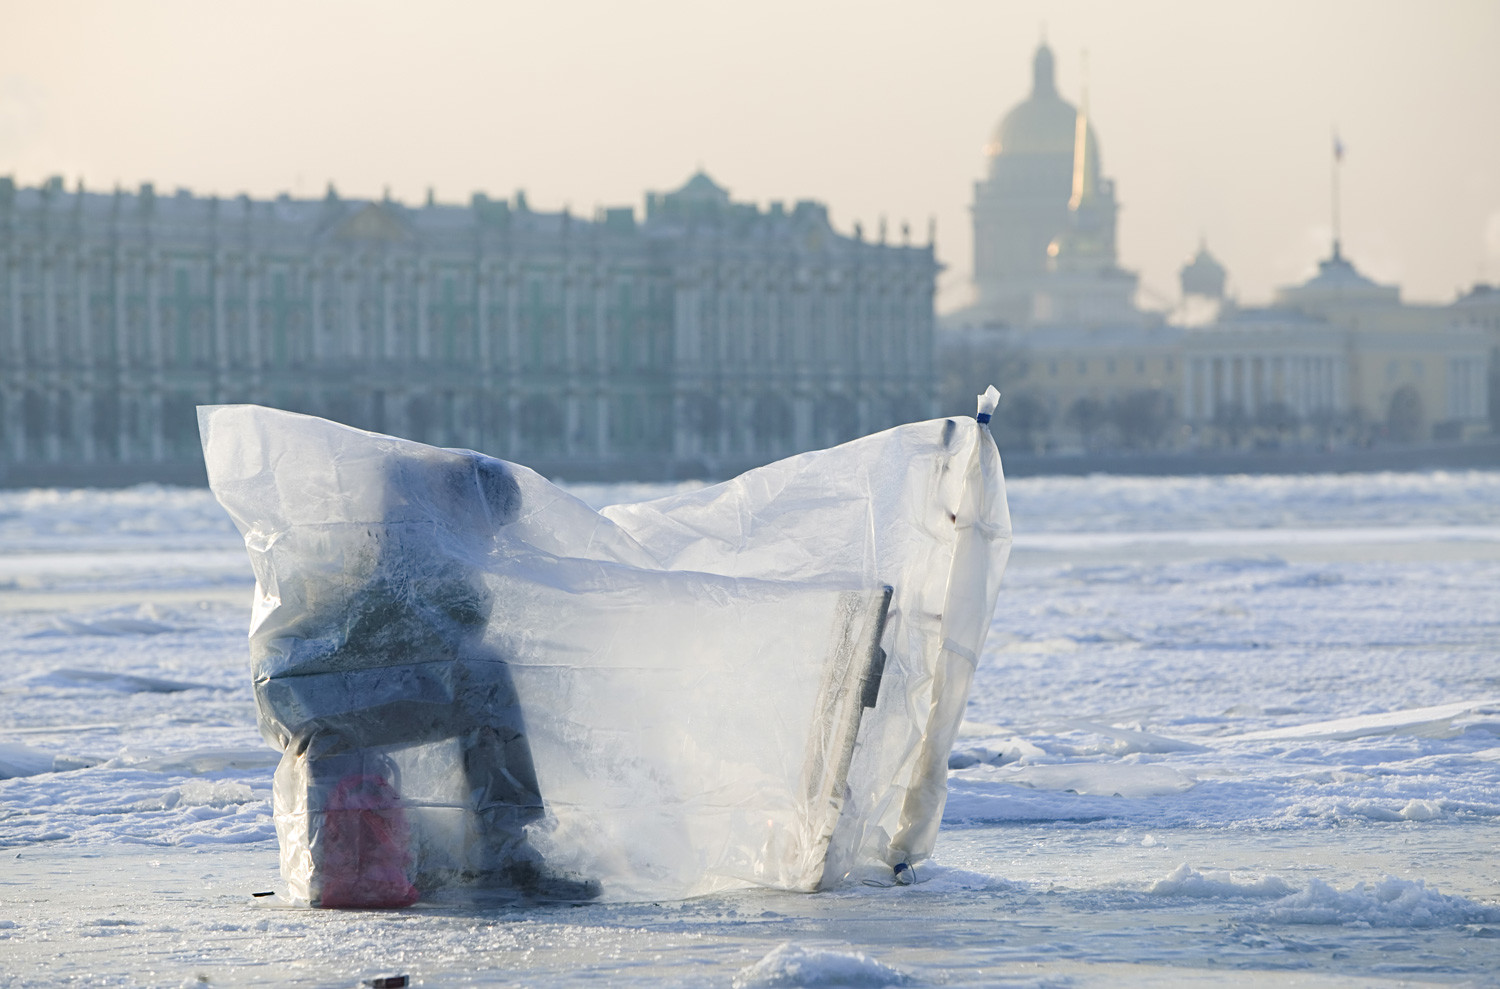 Winter fishing on the Neva. The Winter Palace. St. Petersburg. Russia